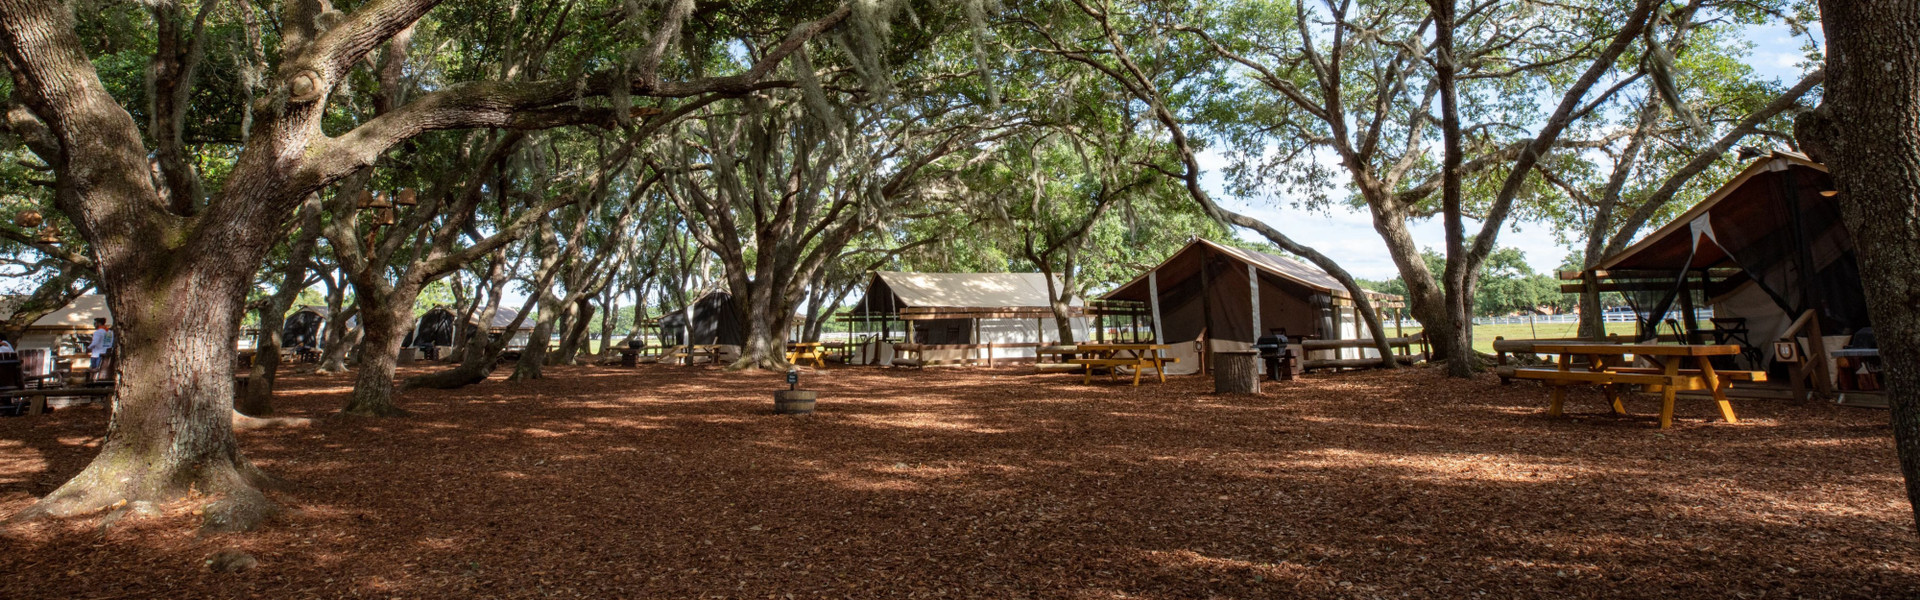 Florida Ranch Hotel Accommodations | Inside of Glamping Tent